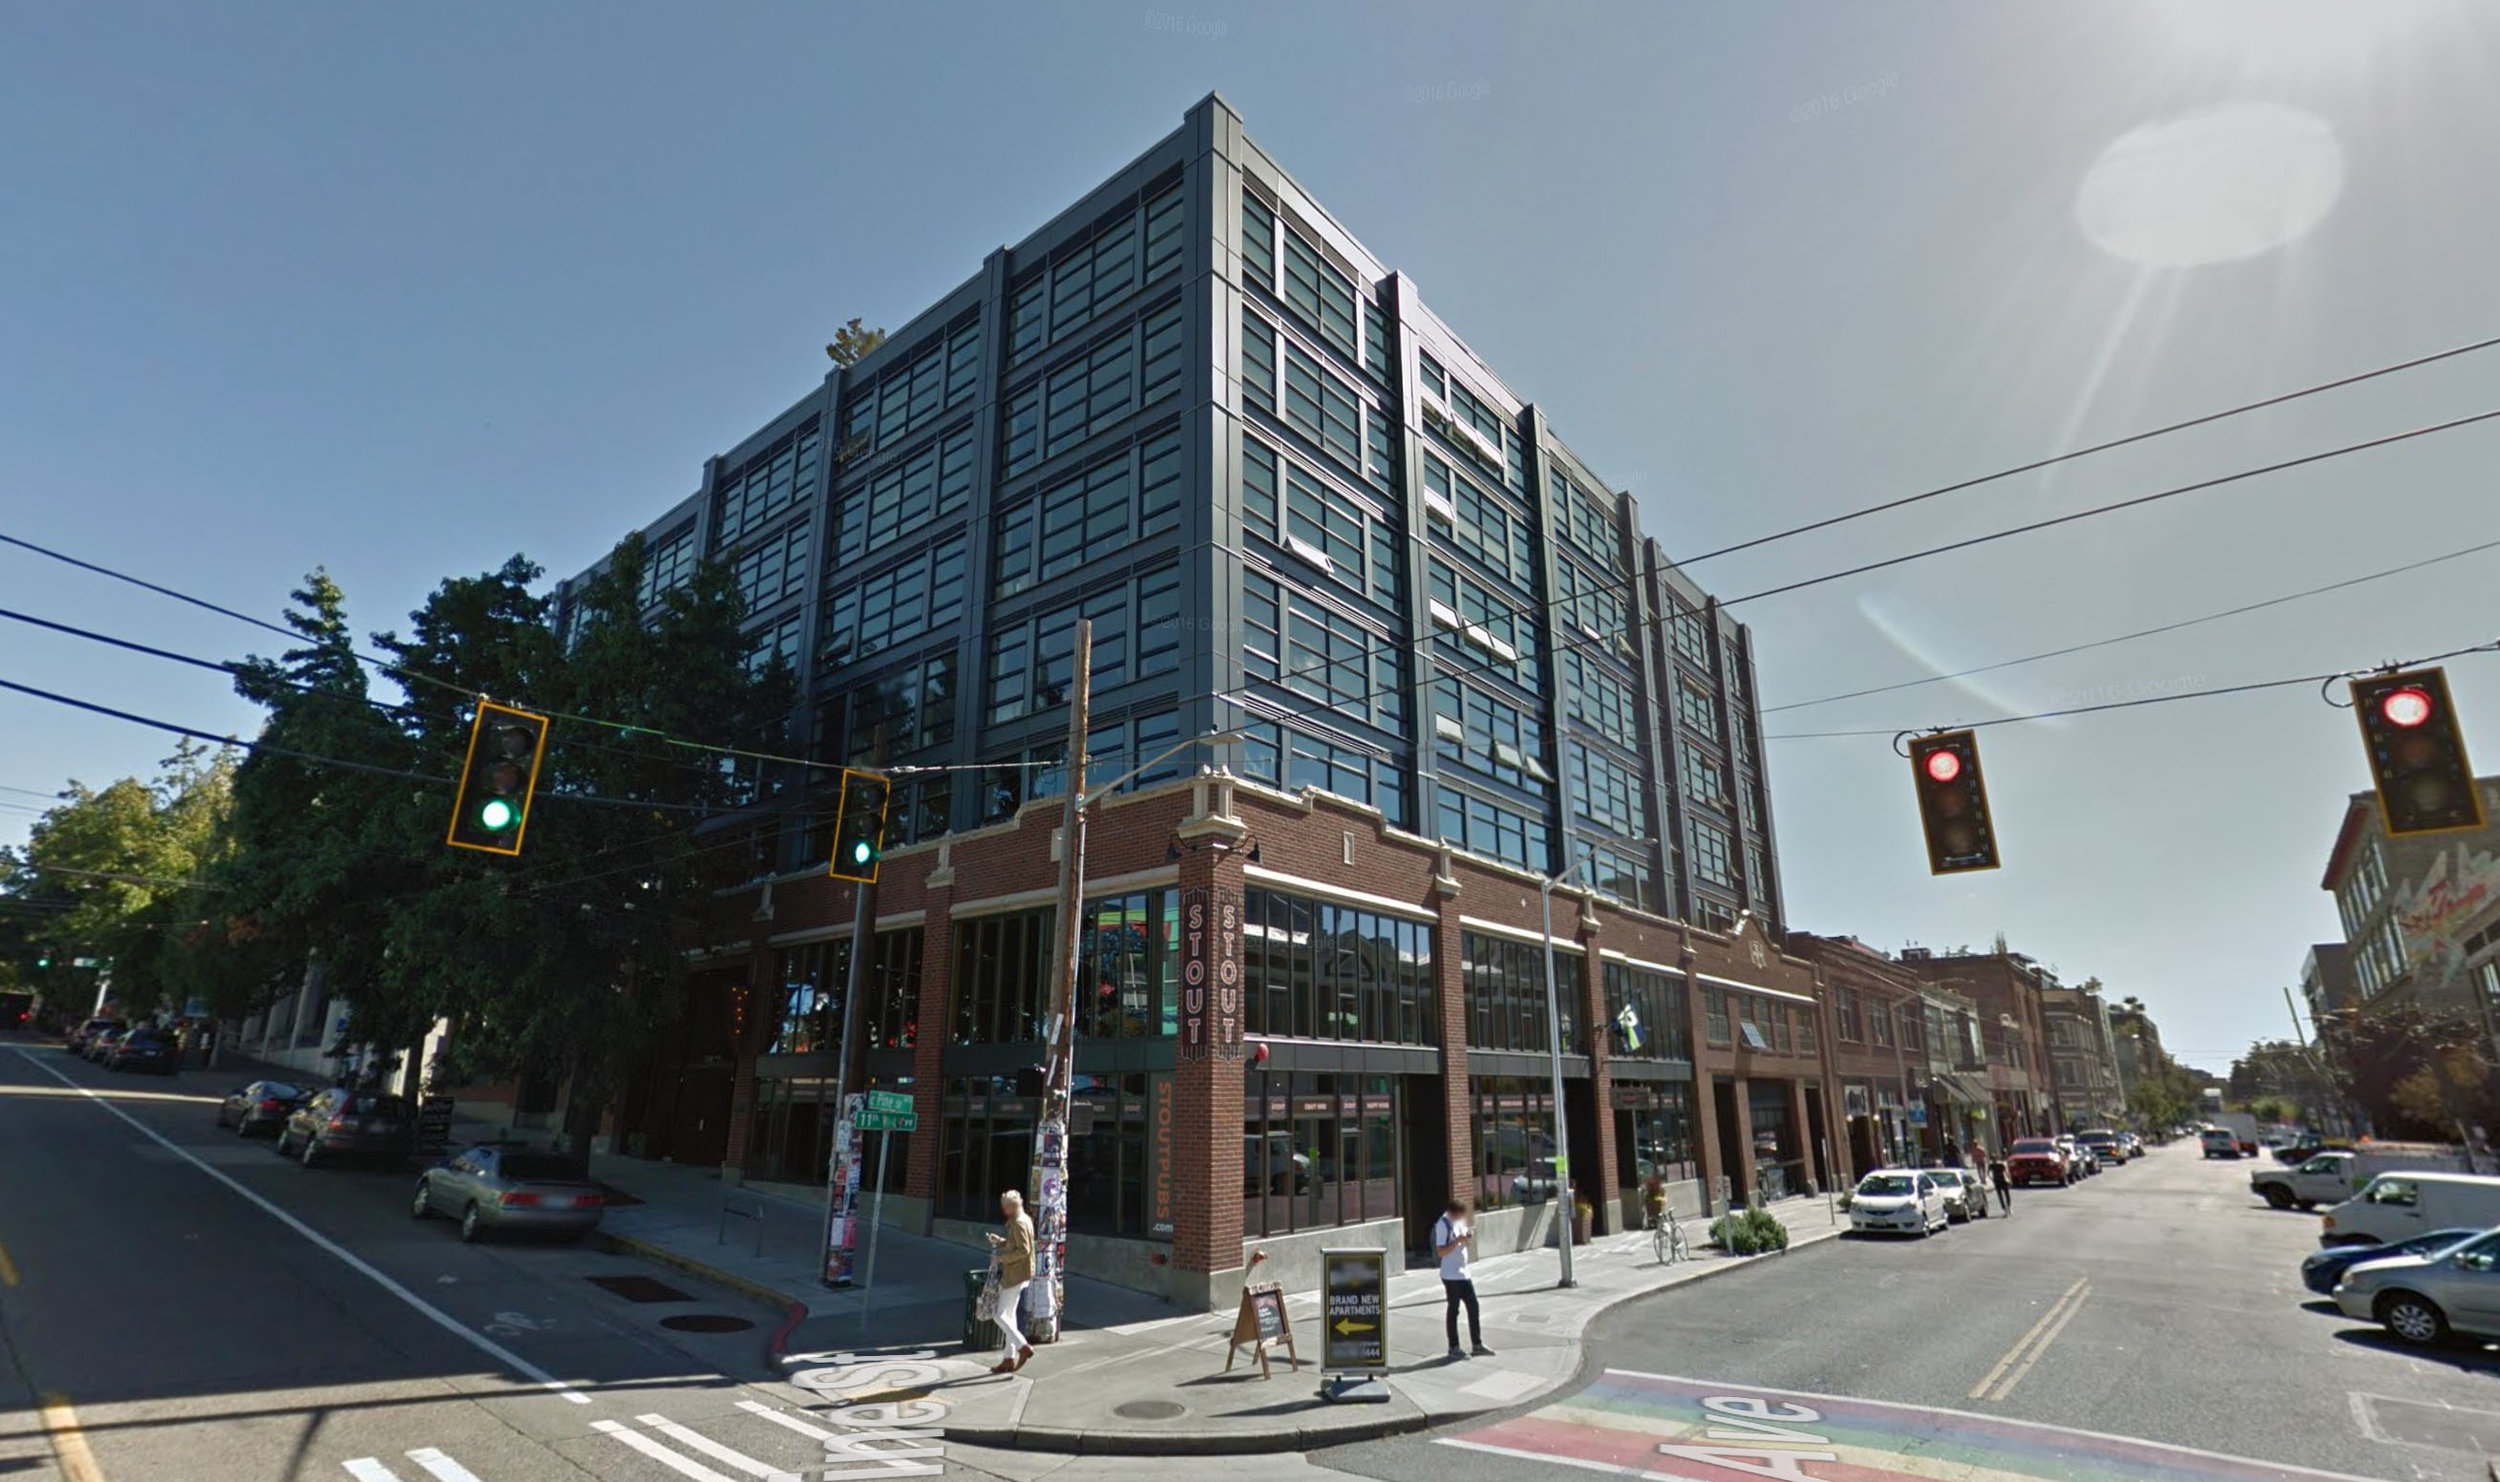 Another example of a Seattle redevelopment with a retained historic facade, 3 blocks down the street from Bill's Off Broadway.